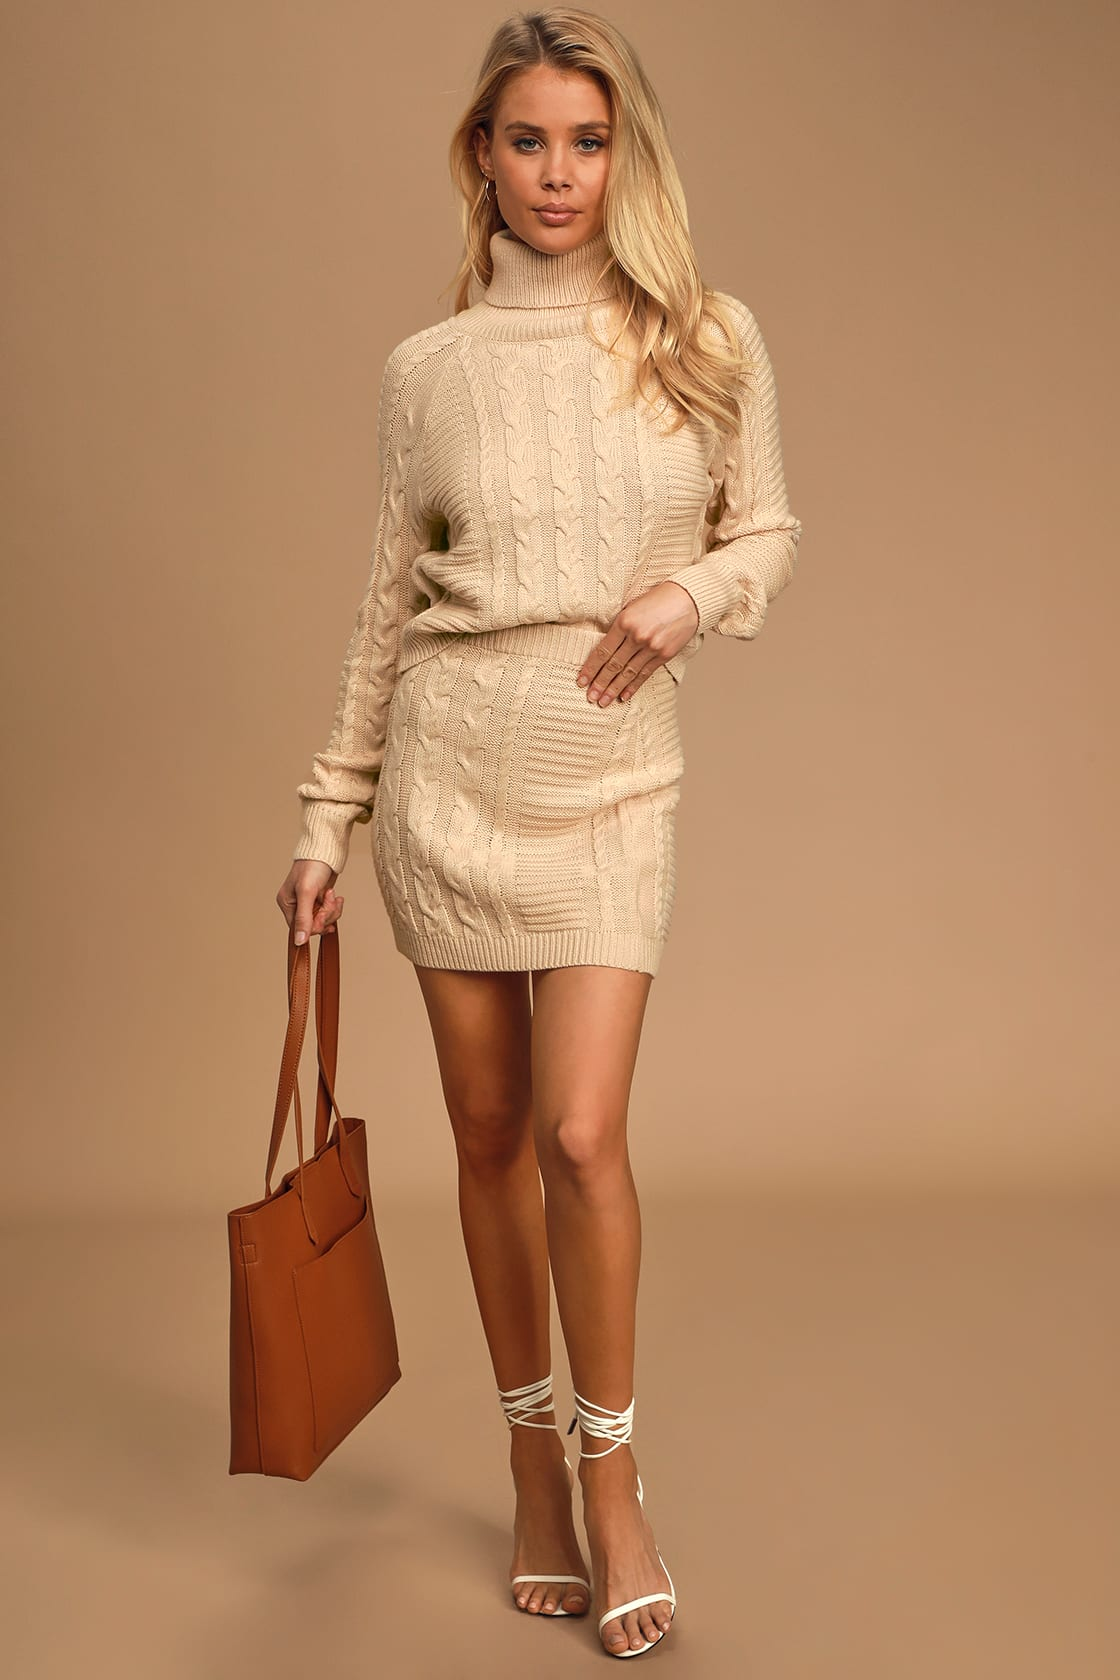 Matching crea, cable knit sweater and skirt set